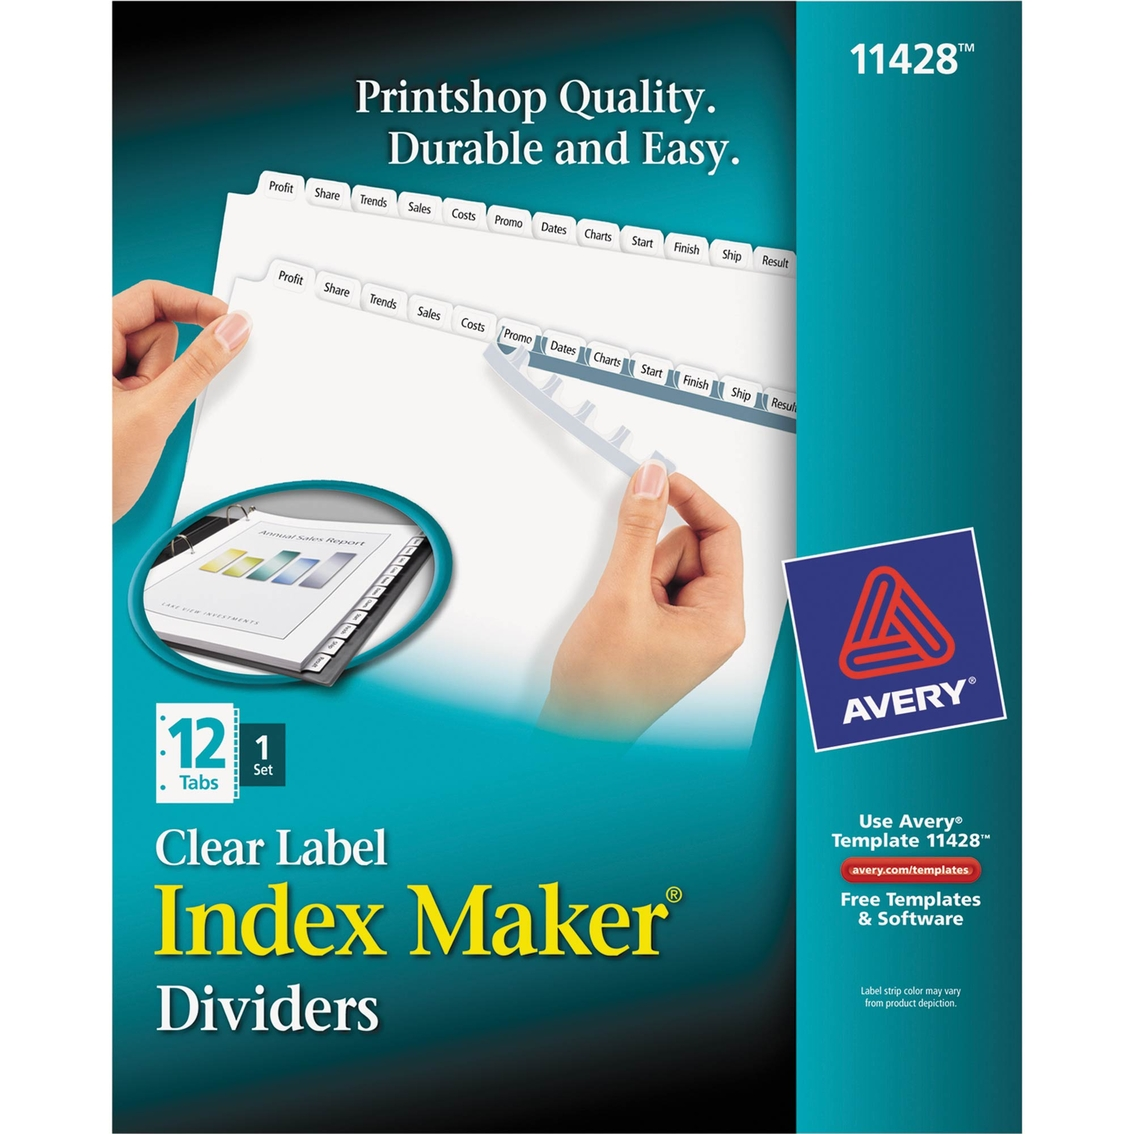 avery index maker print apply clear label letter size With label maker large letters